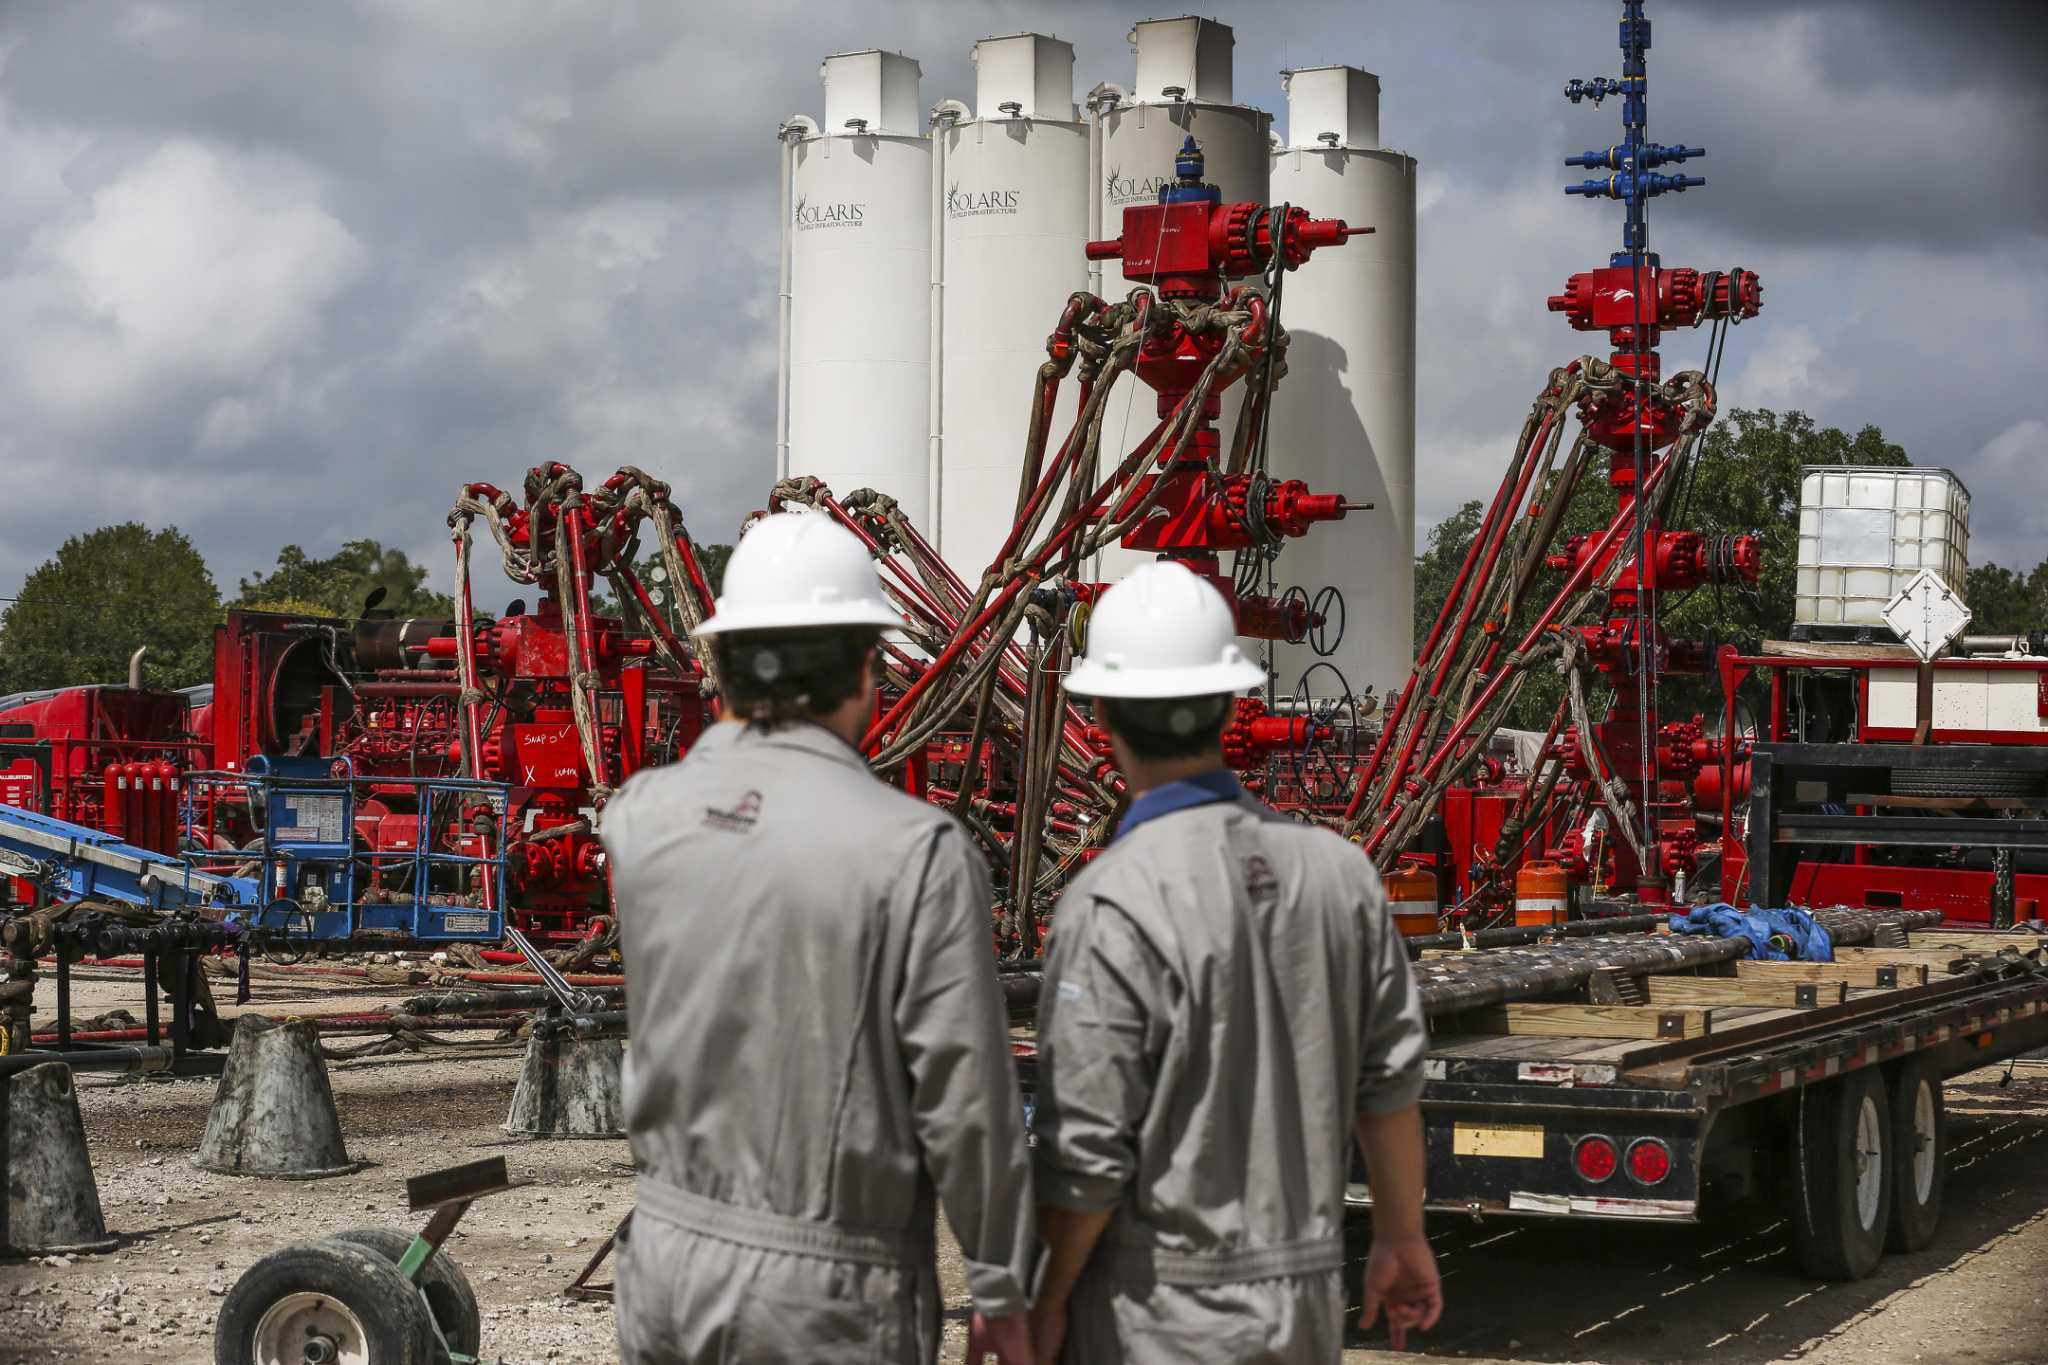 Epitome of America's shale gas boom now warns it may go bust